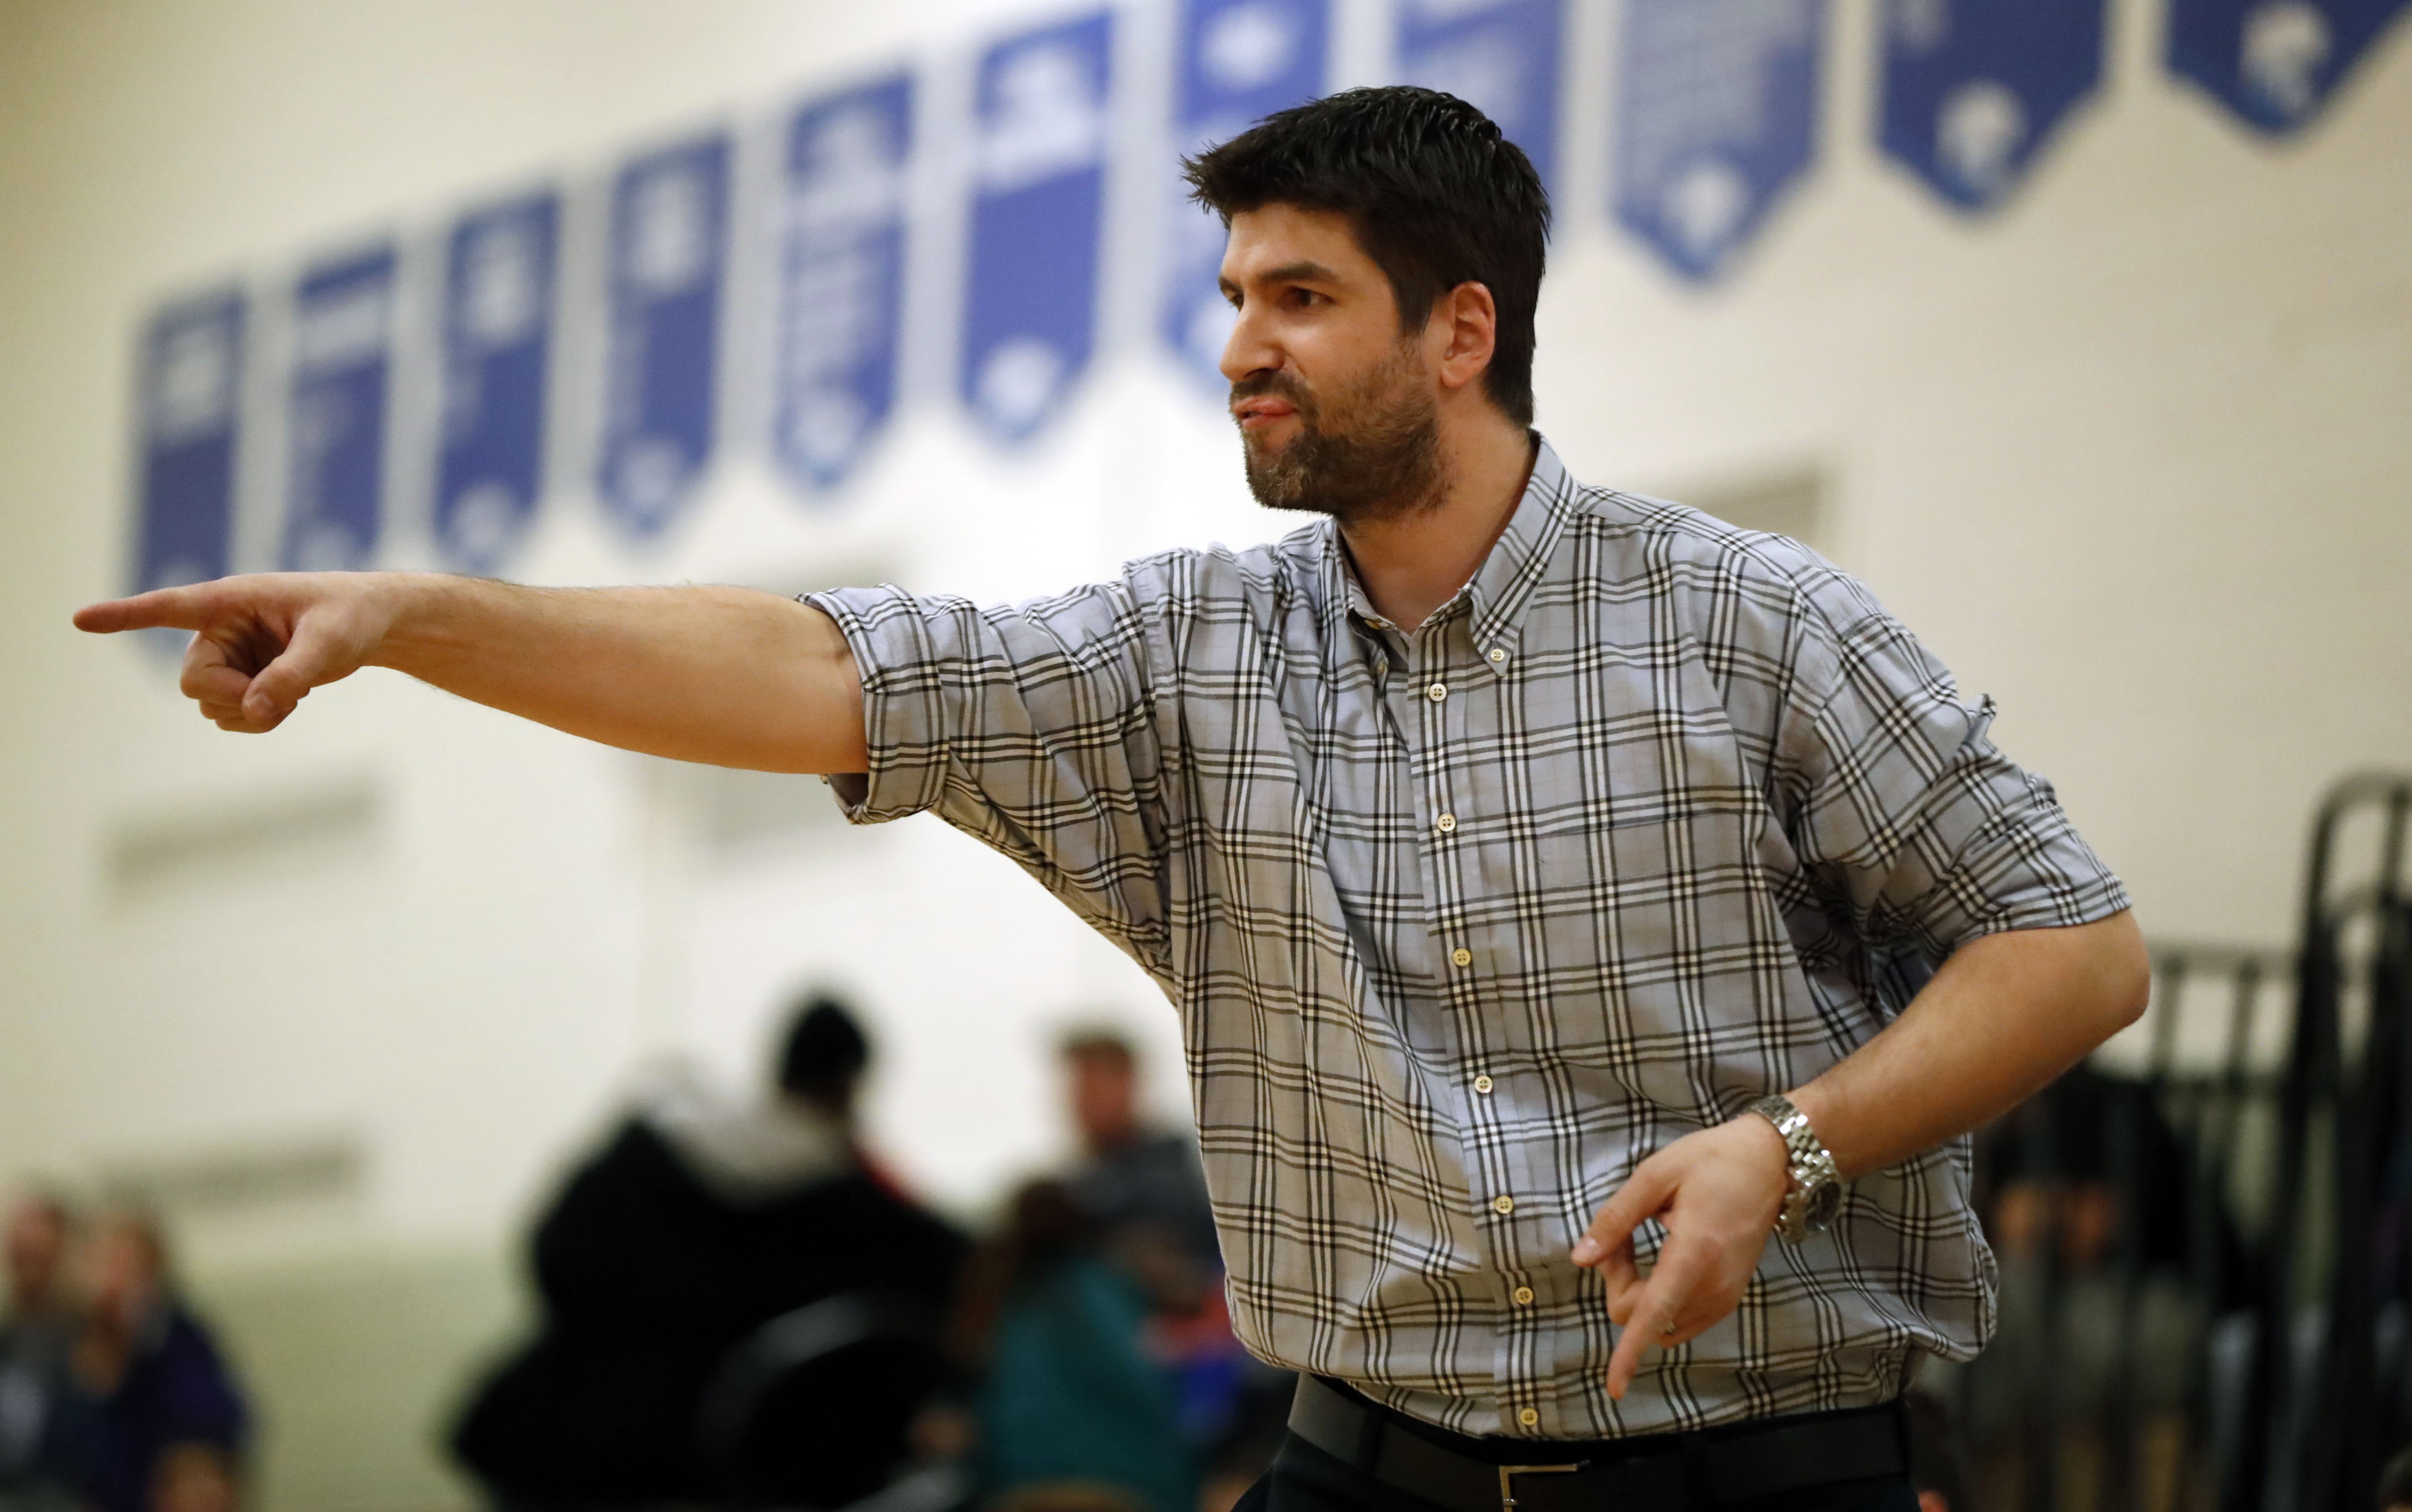 Coaching at Nichols provides Darren Fenn an outlet to satisfy his thirst for competition now that his professional playing career is over. (Harry Scull Jr./Buffalo News)